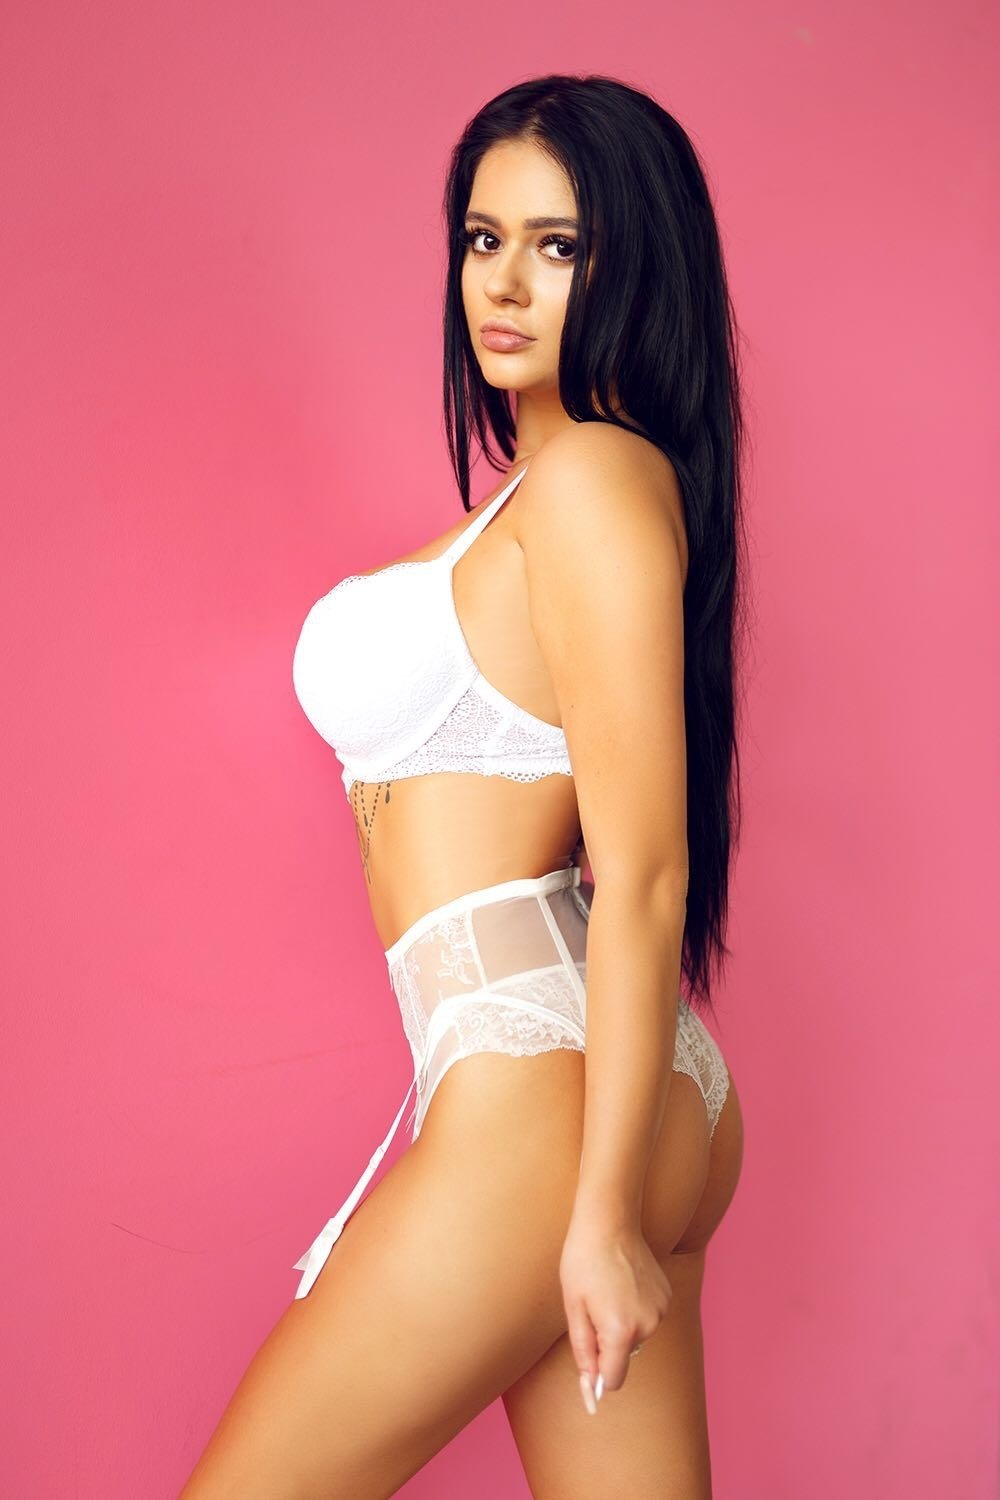 poland independent escorts sex lillehammer